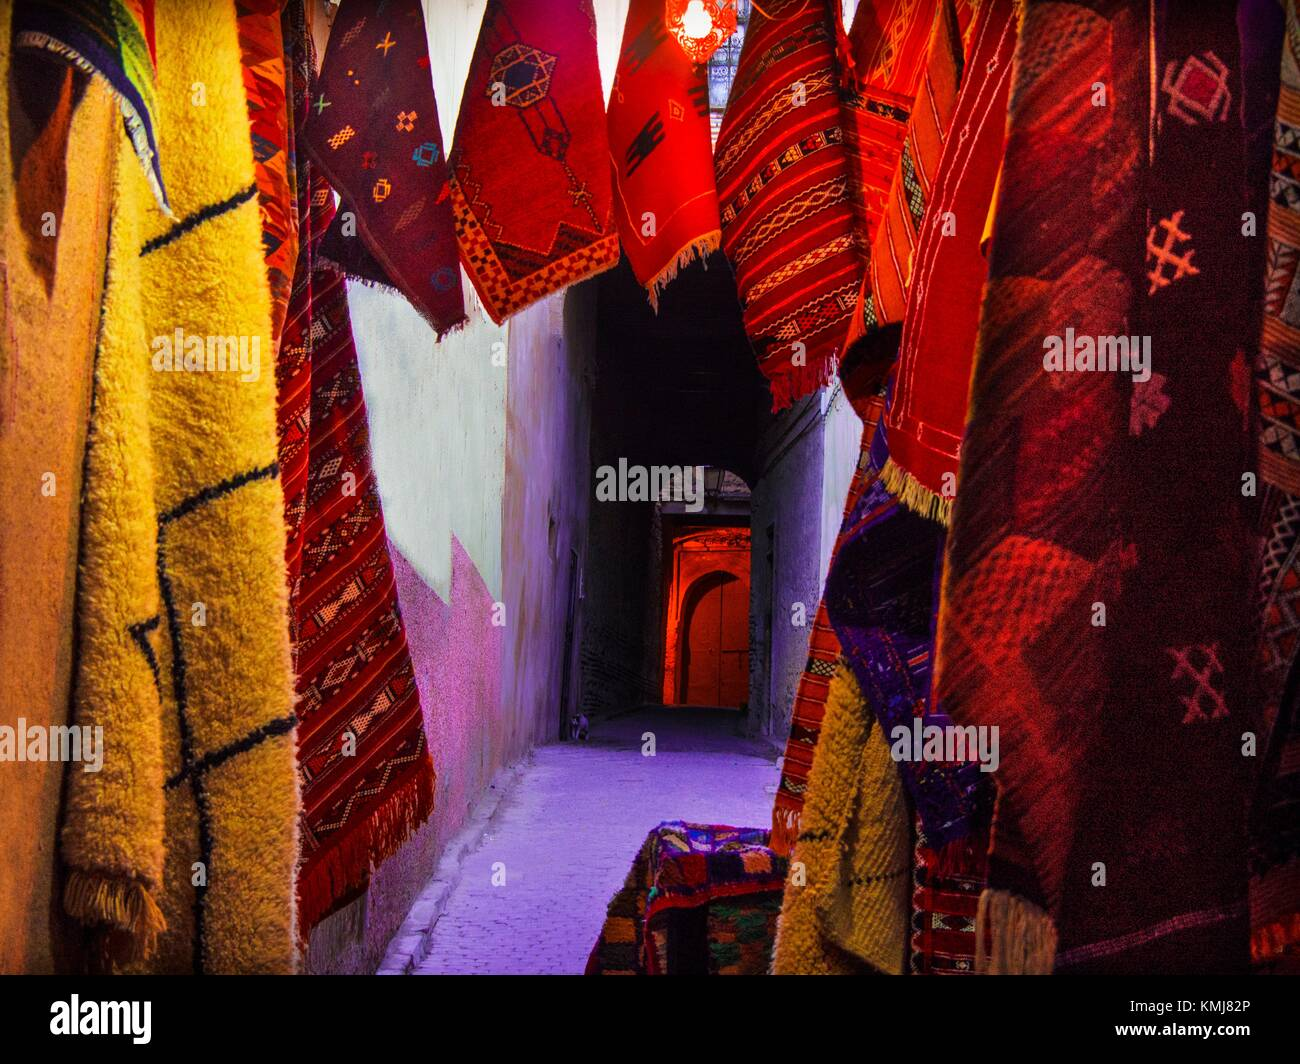 Morocco, Fes, Handycraft. Handmade Carpets on exhibit in a small street of the 'Medina' (old part) of Fes. - Stock Image